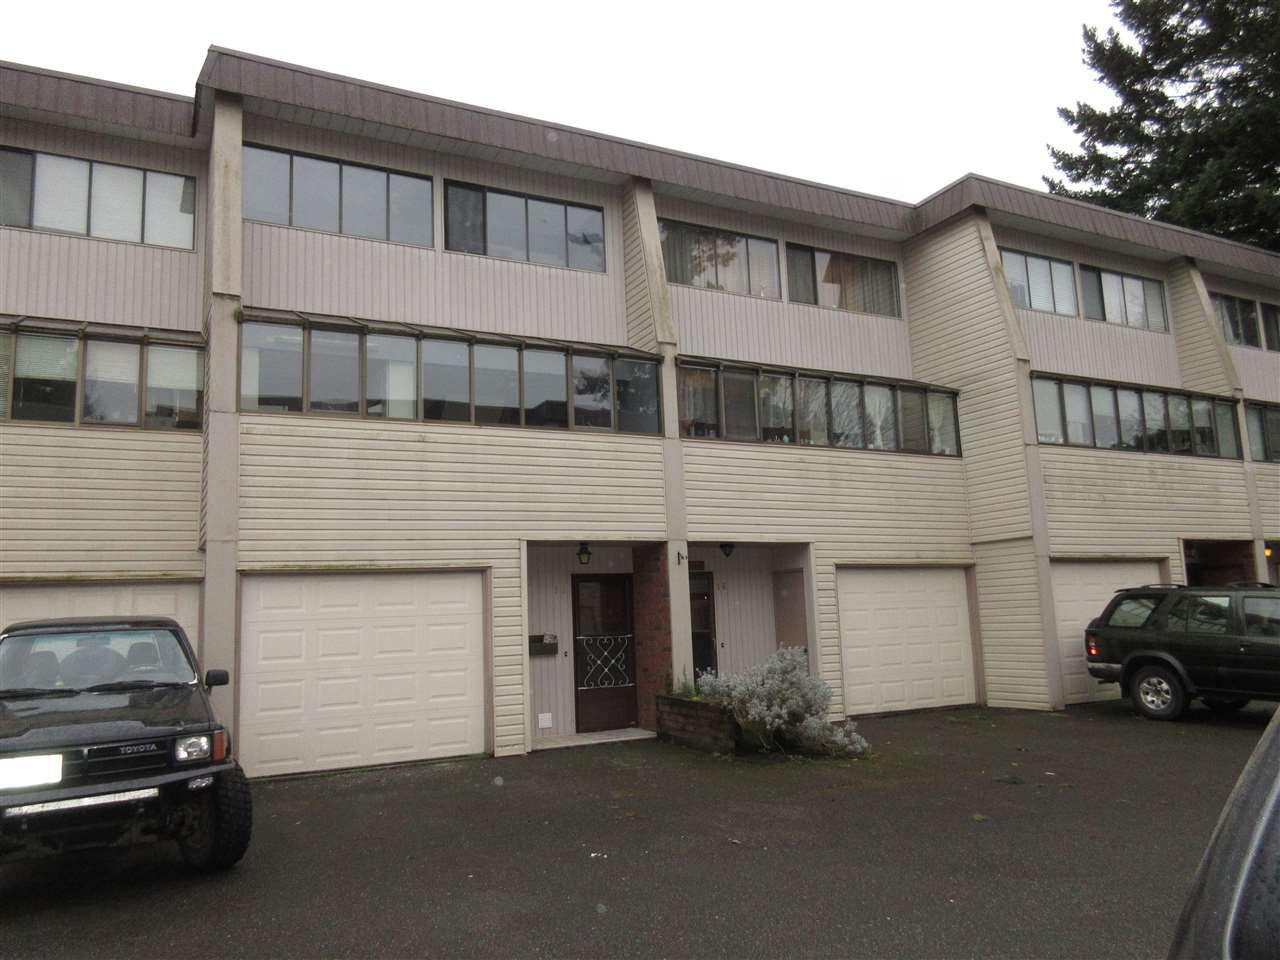 """Main Photo: 15 9446 HAZEL Street in Chilliwack: Chilliwack E Young-Yale Townhouse for sale in """"Delong Gardens"""" : MLS®# R2042459"""